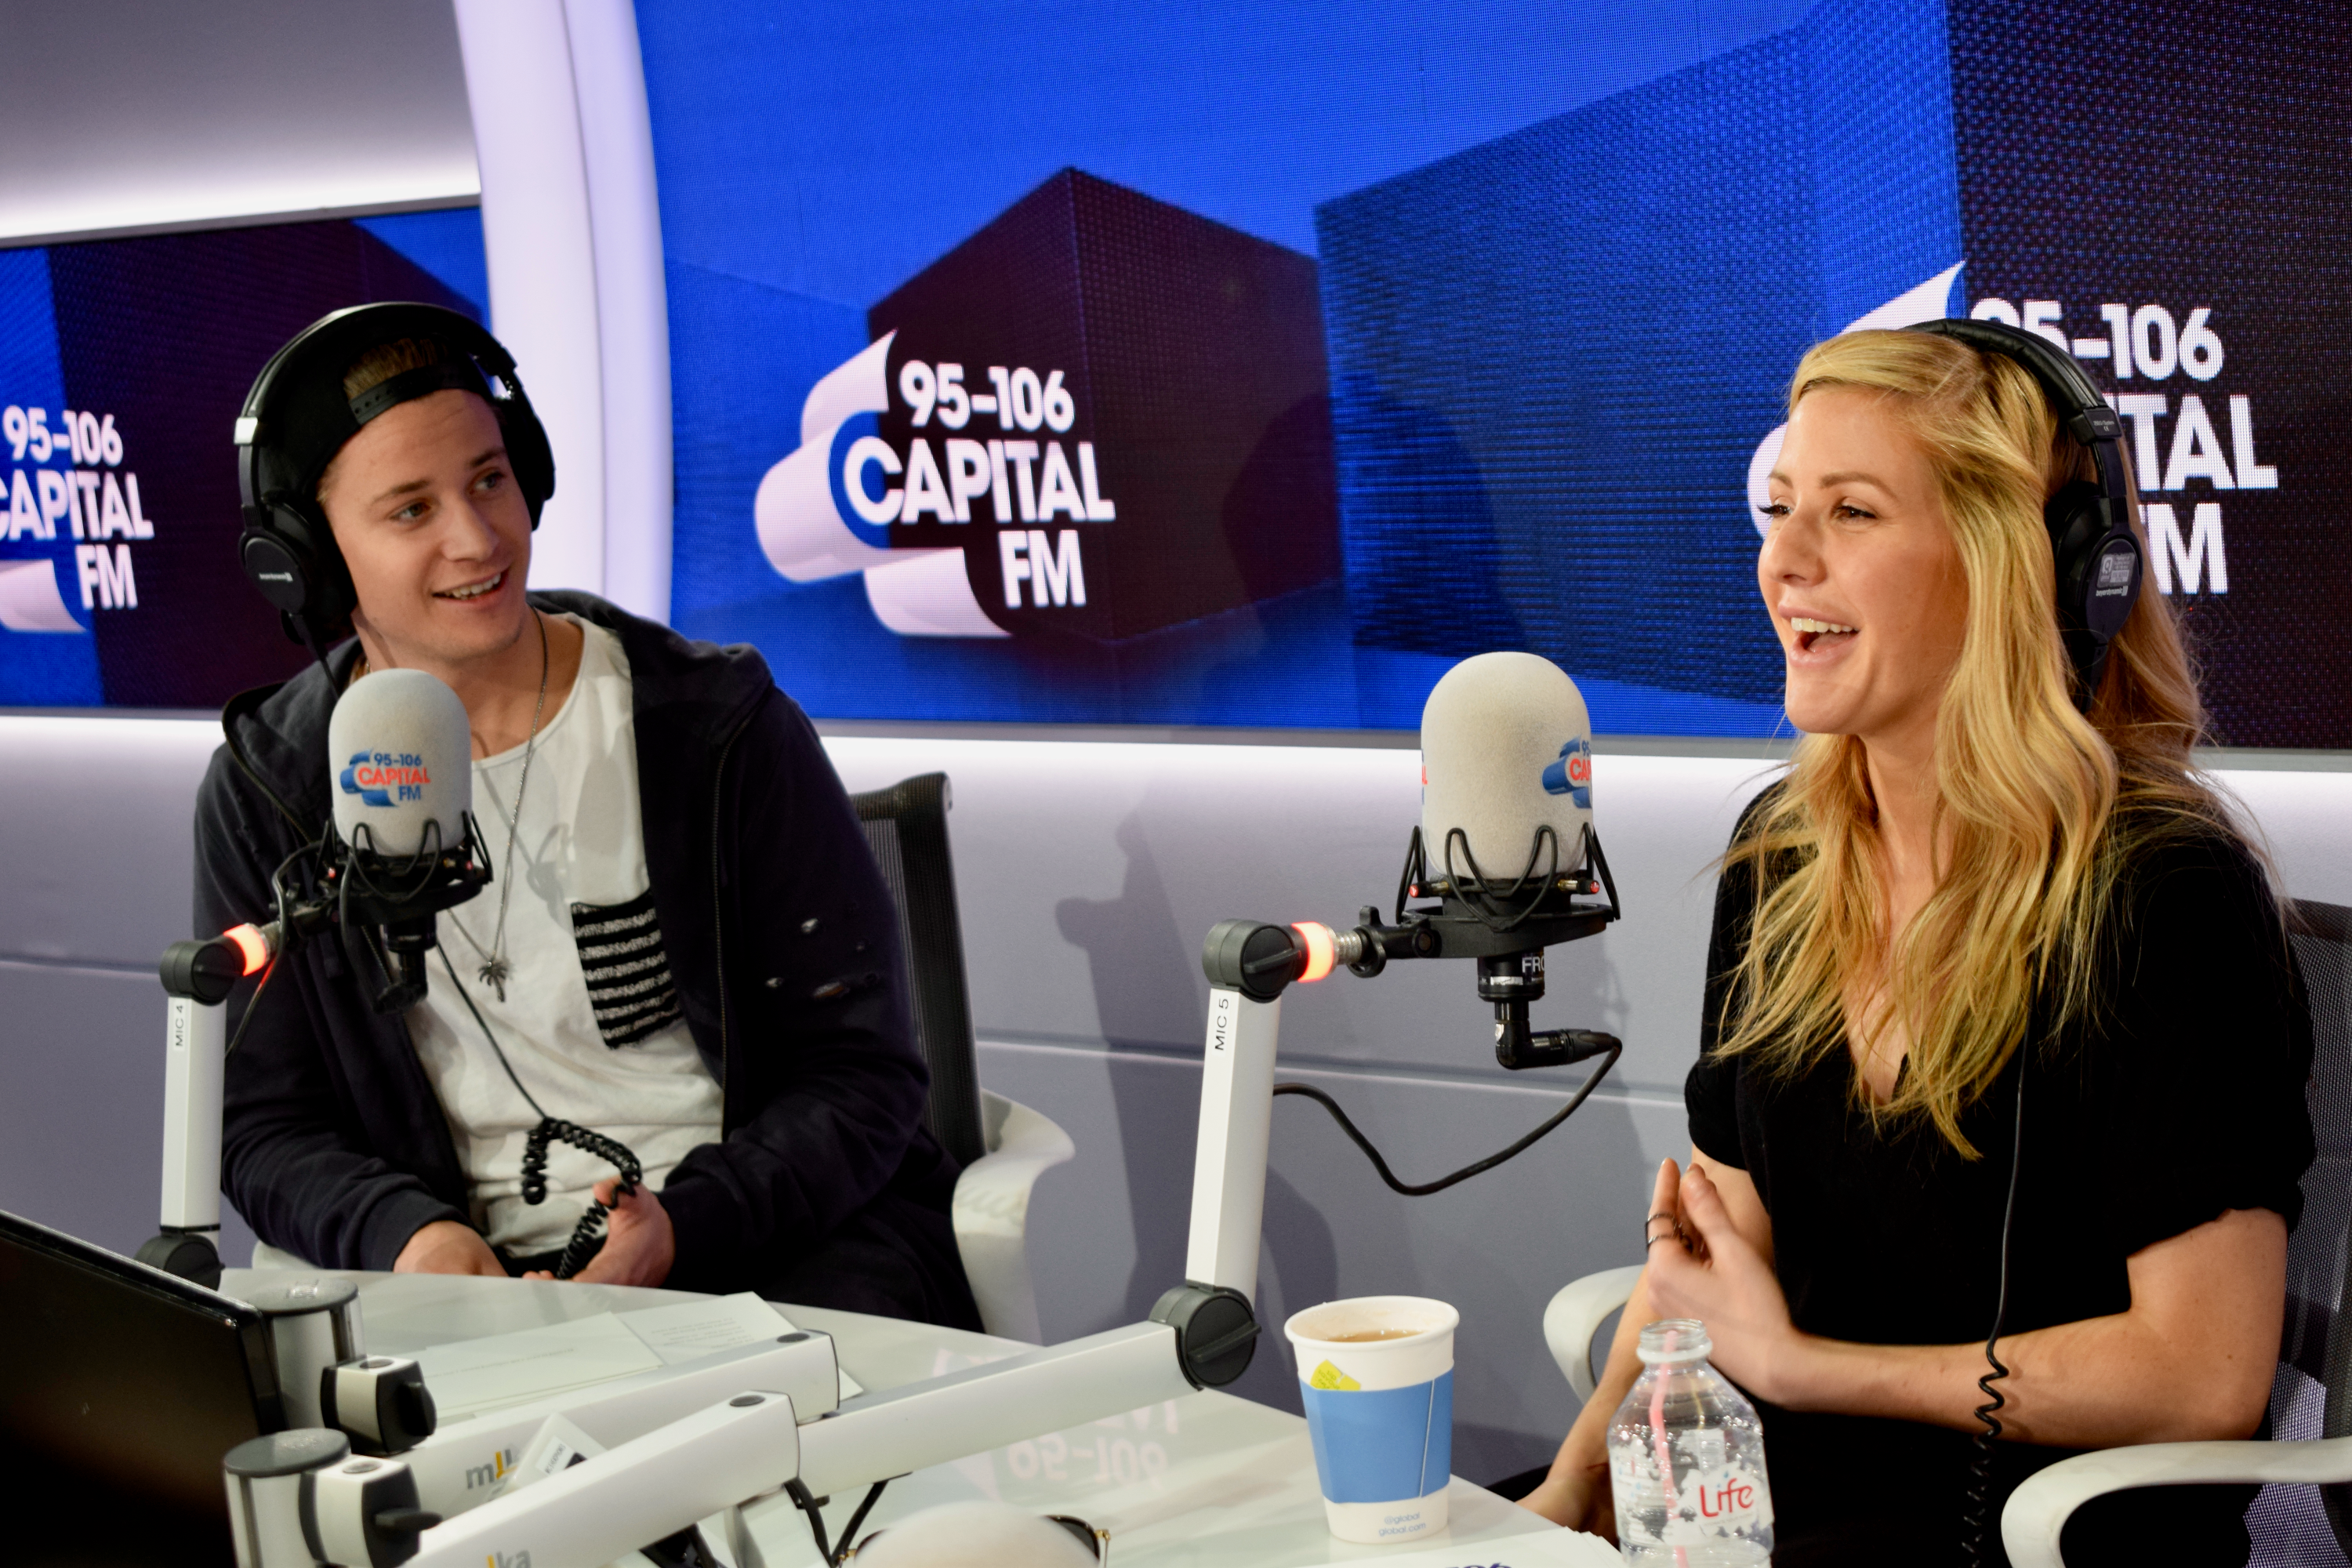 Ellie Goulding and Kygo with Roman Kemp